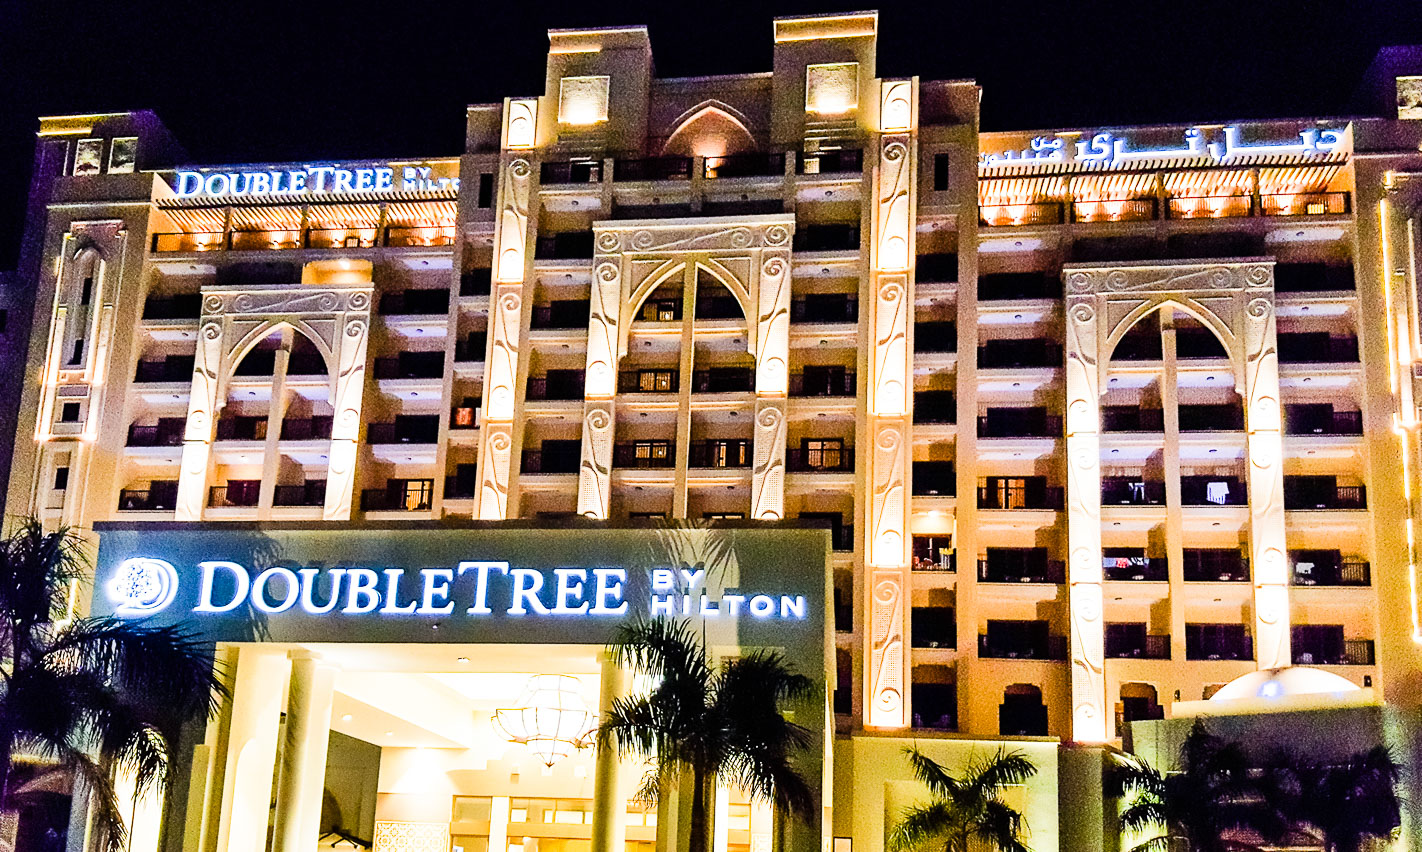 Doubletree by Hilton Resort and Spa Marjan Island (Ras Al Khaimah, UAE)